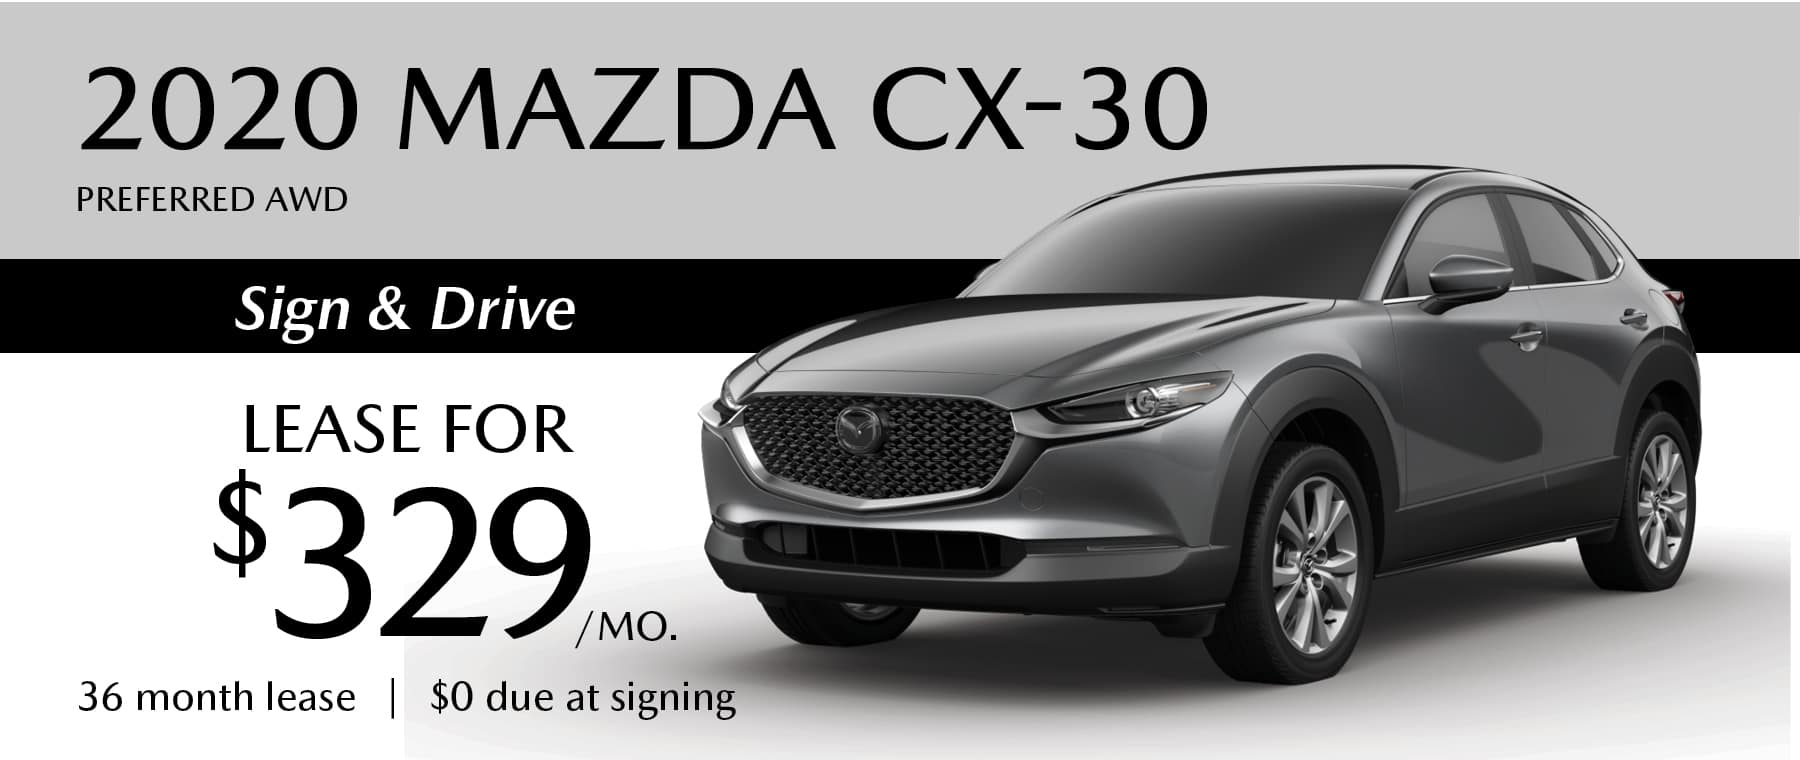 2020 MAZDA CX-30 Preferred AWD Sign and Drive Lease offer with $0 due at signing